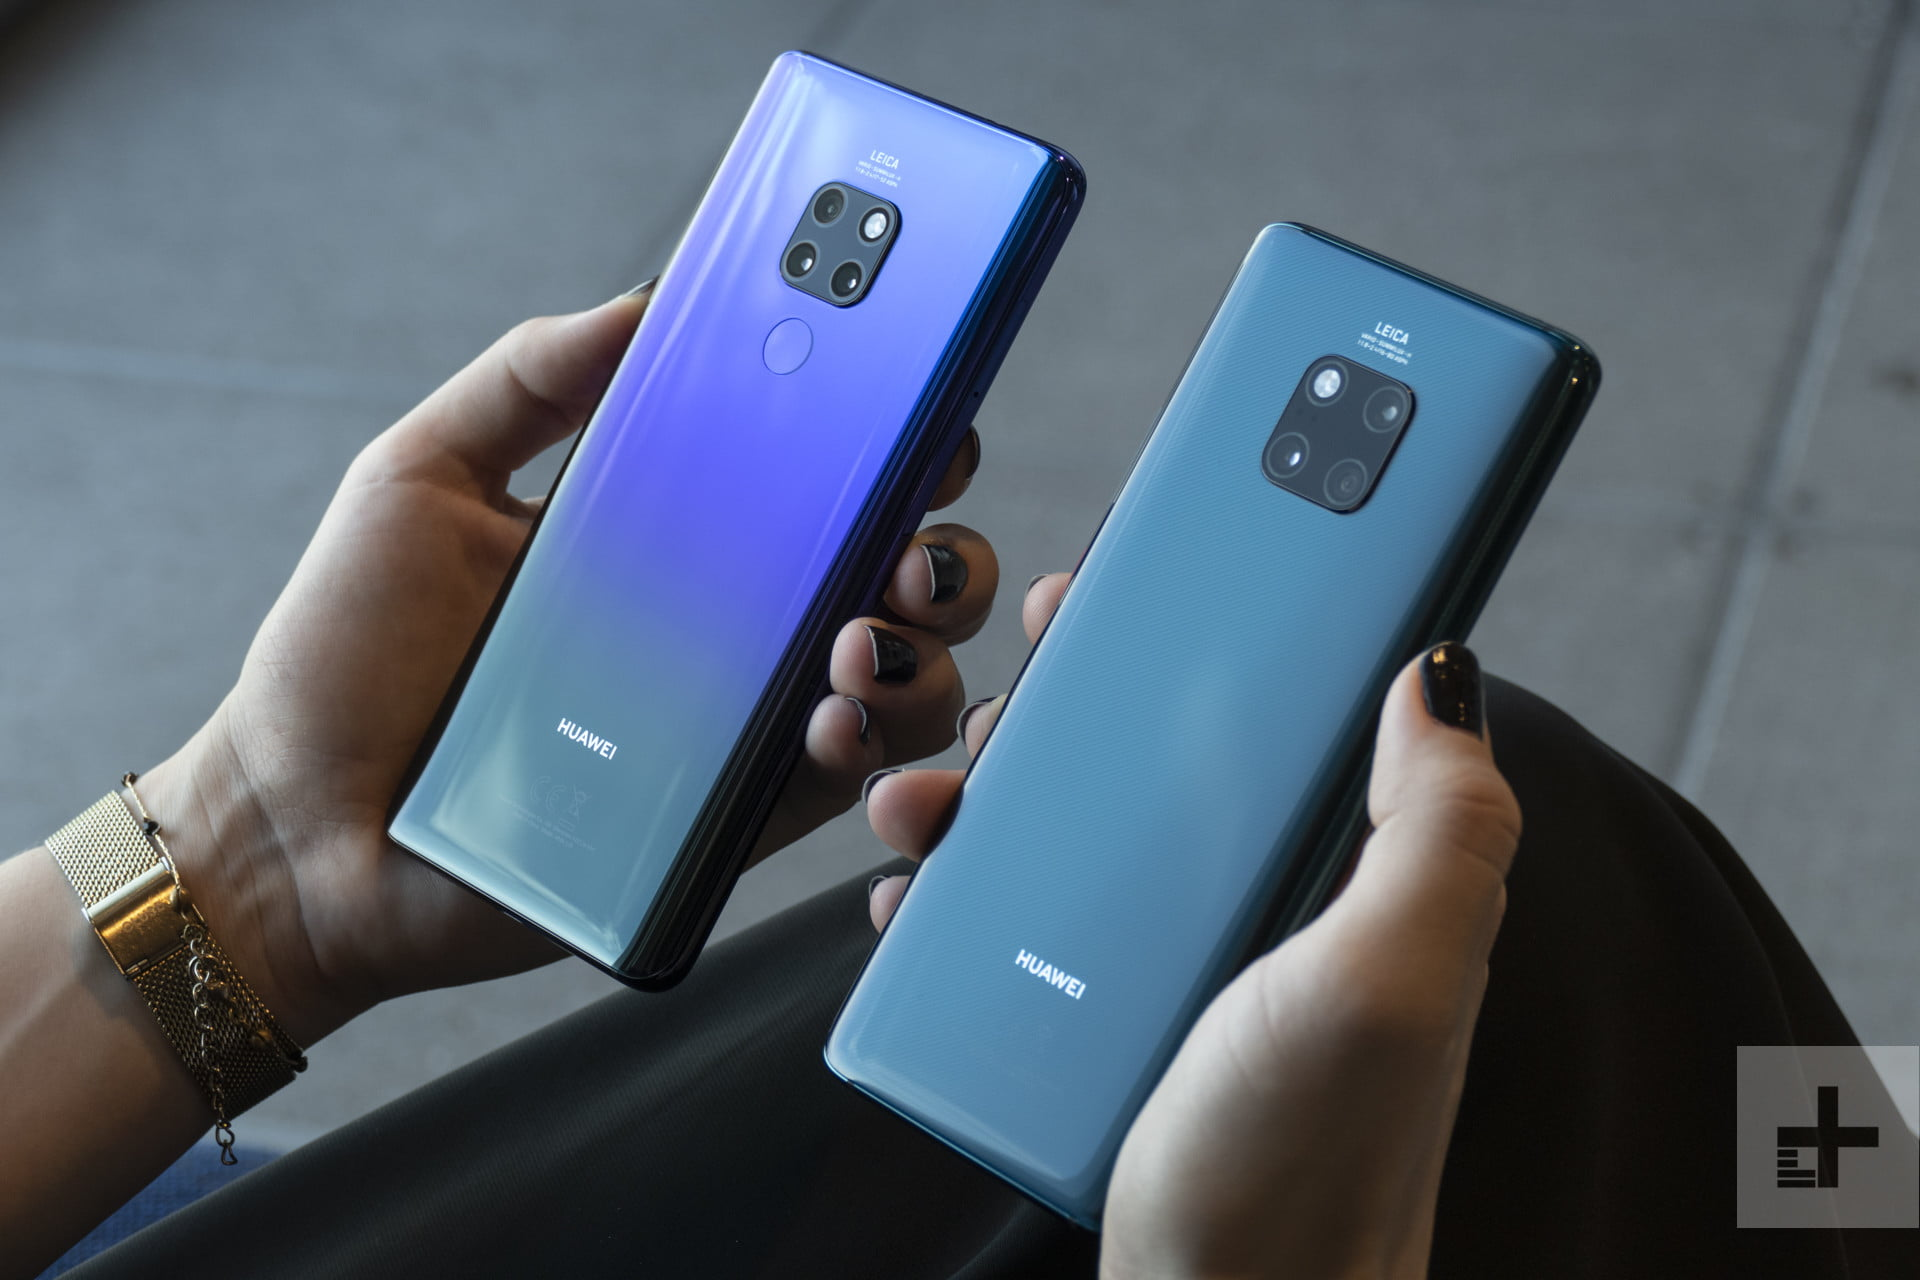 Huawei Mate 20 Hands-on Review | Digital Trends